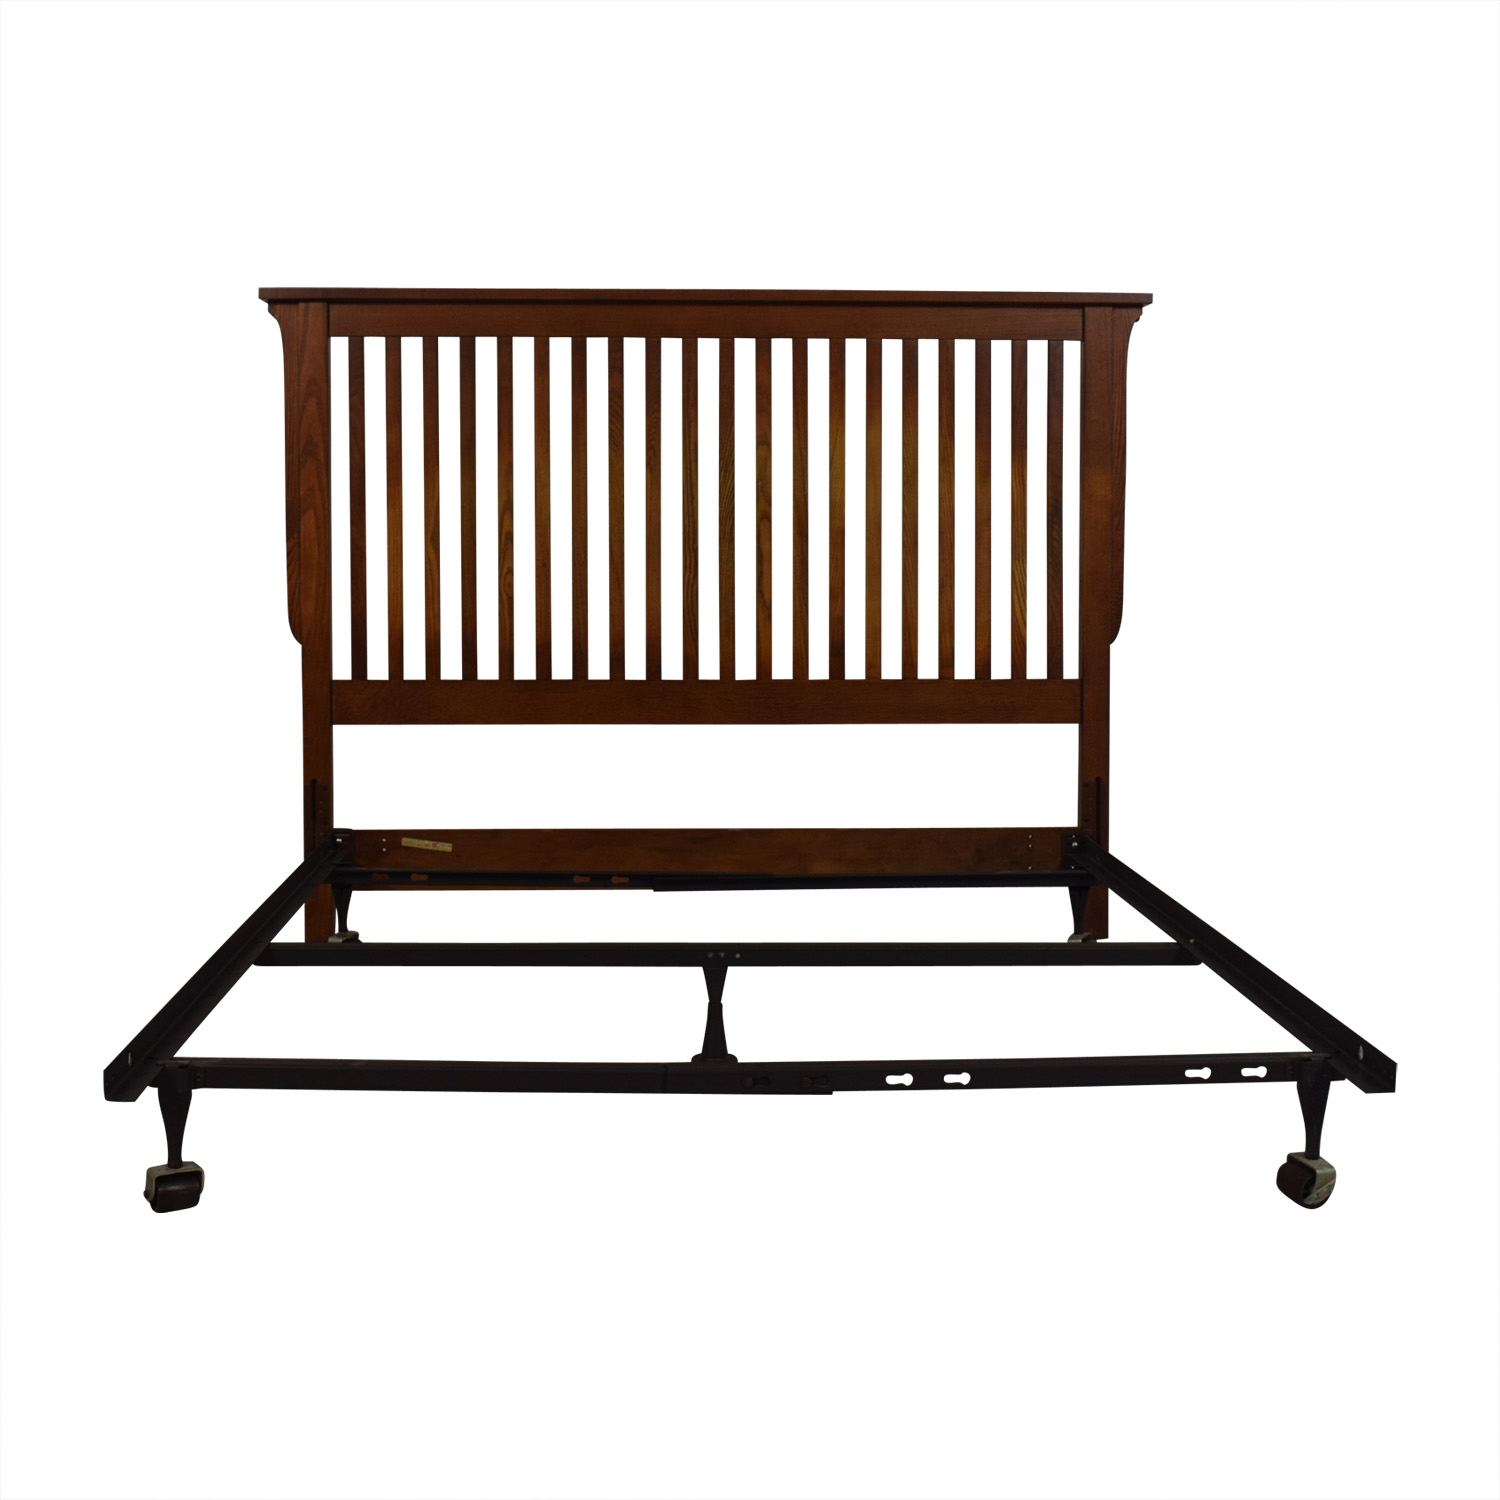 Bassett Furniture Bassett Furniture Mission Wood Headboard and Metal Base Full Bed Frame price